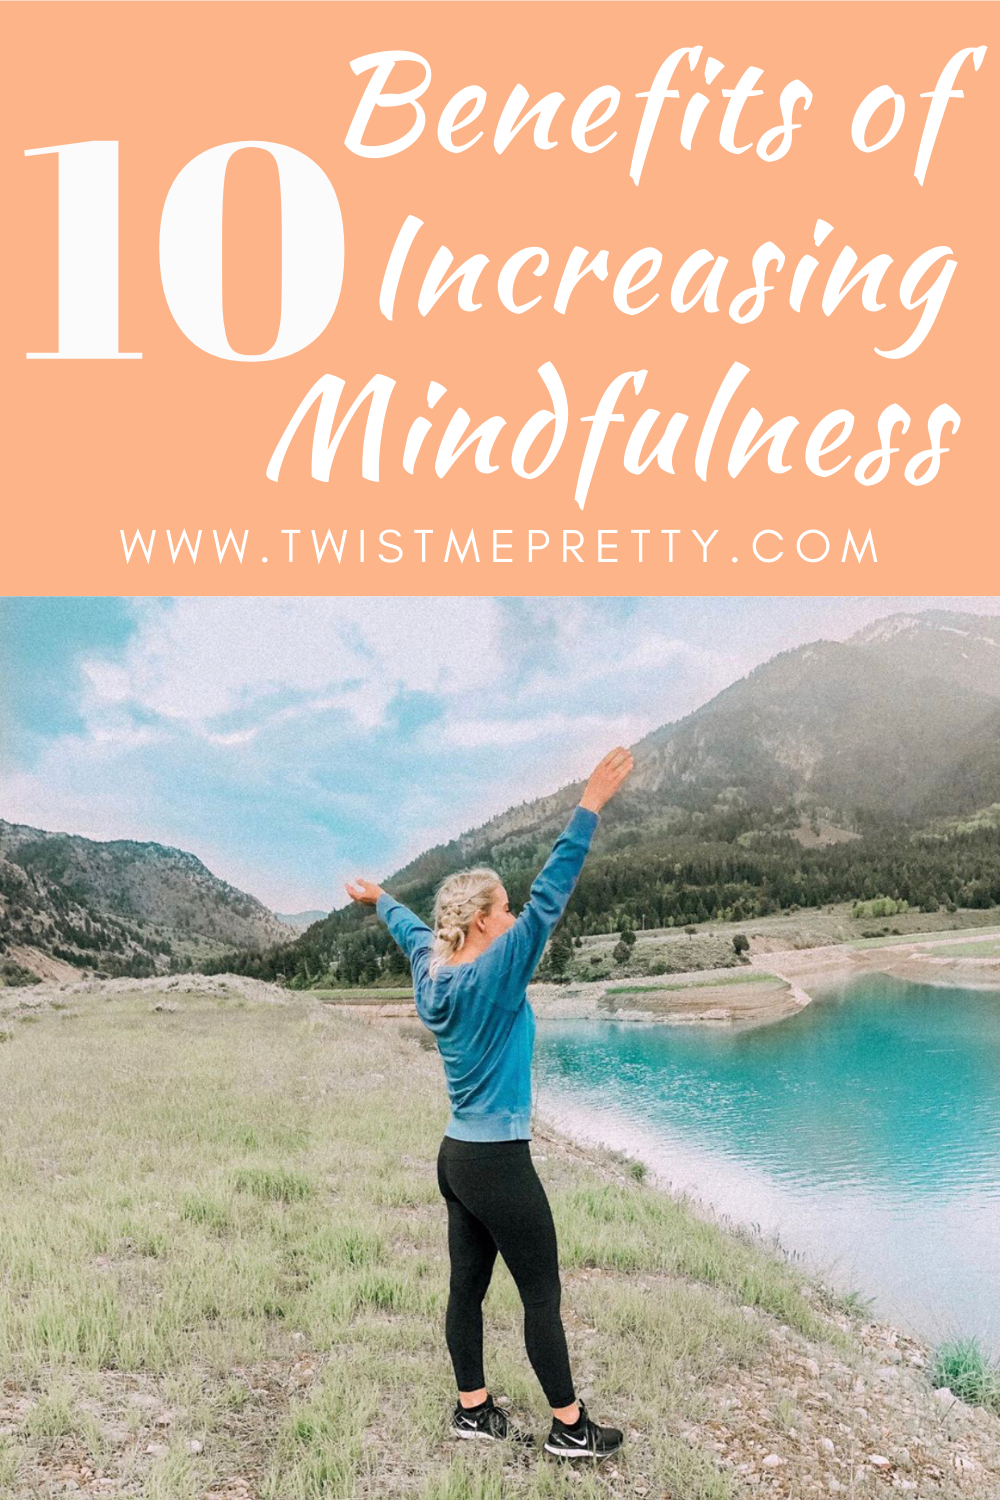 10 Benefits of Increasing Mindfulness in your life. www.twistmepretty.com